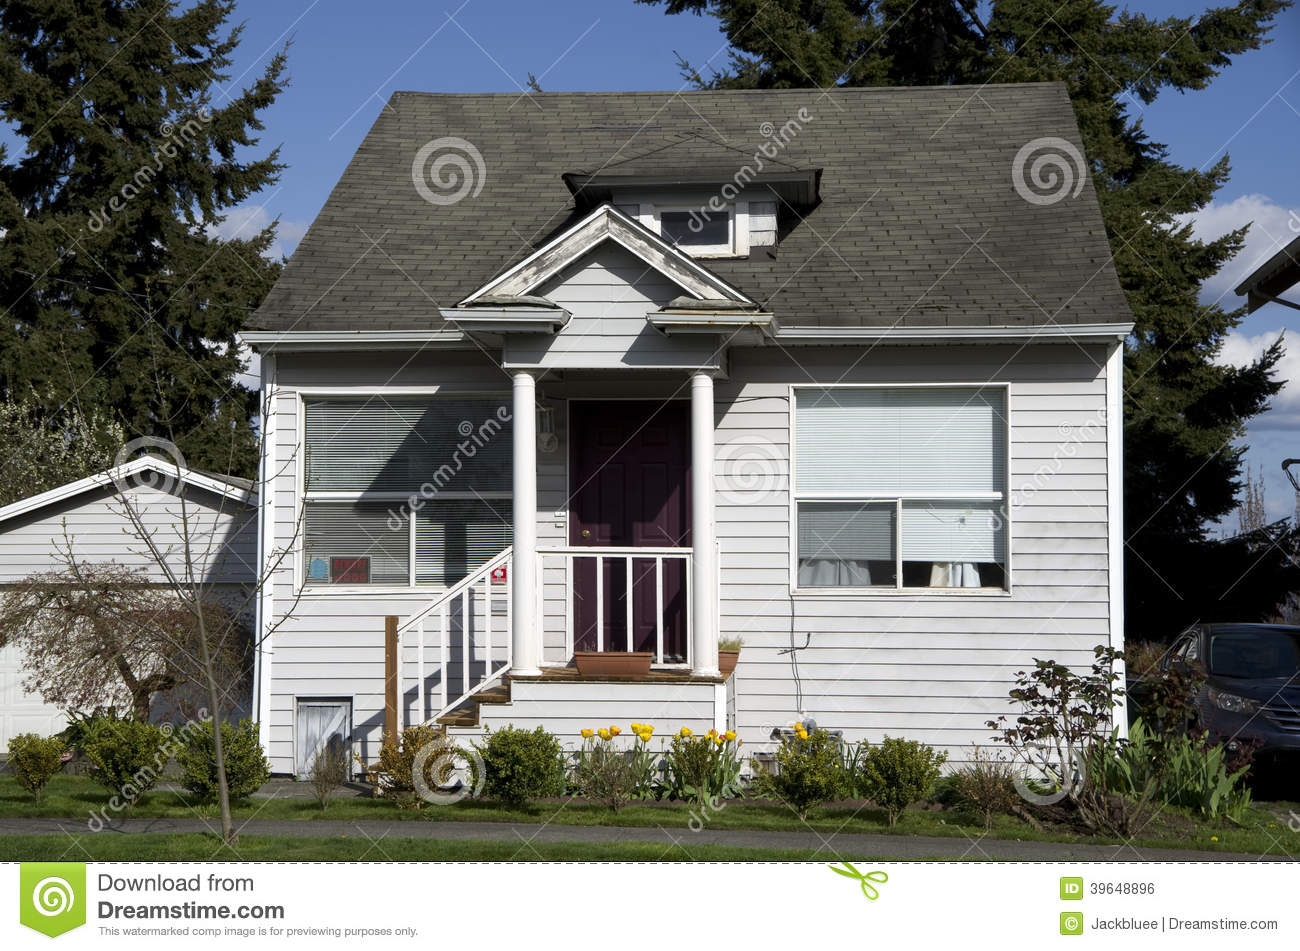 Small Old House Stock Photo Image Of Small Wooden Estate 39648896